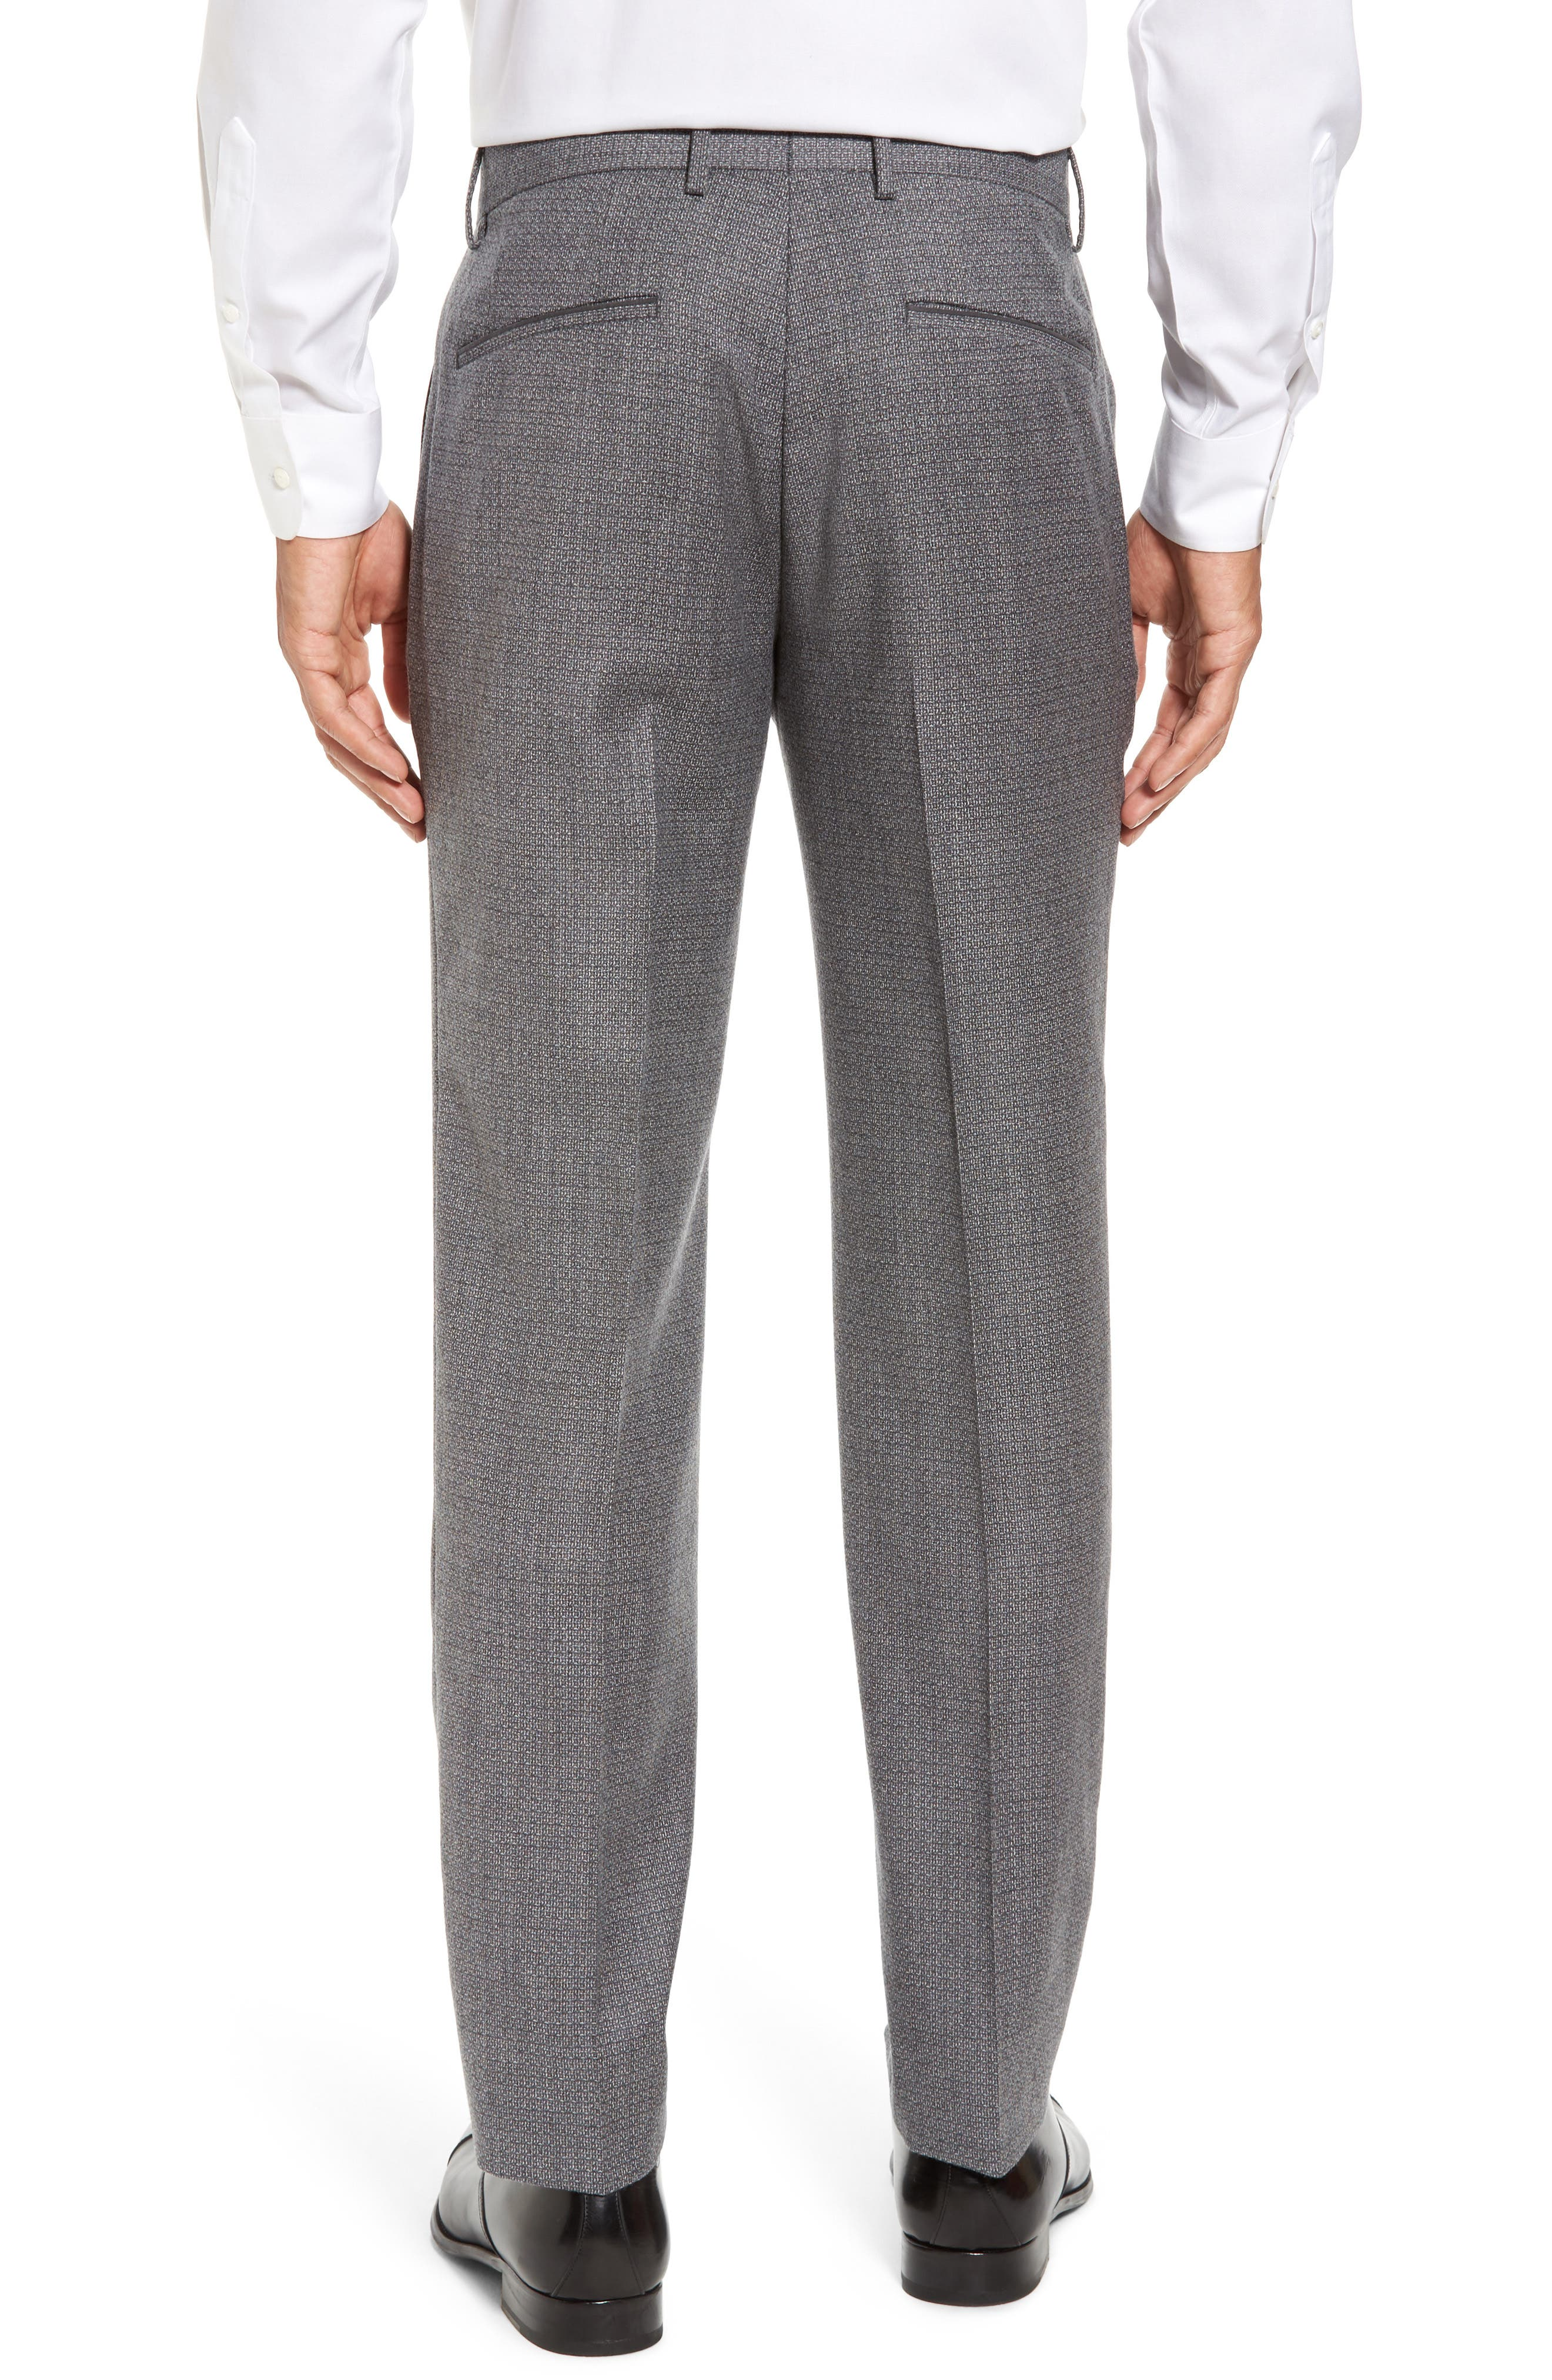 Giro Flat Front Solid Wool Trousers,                             Alternate thumbnail 2, color,                             030